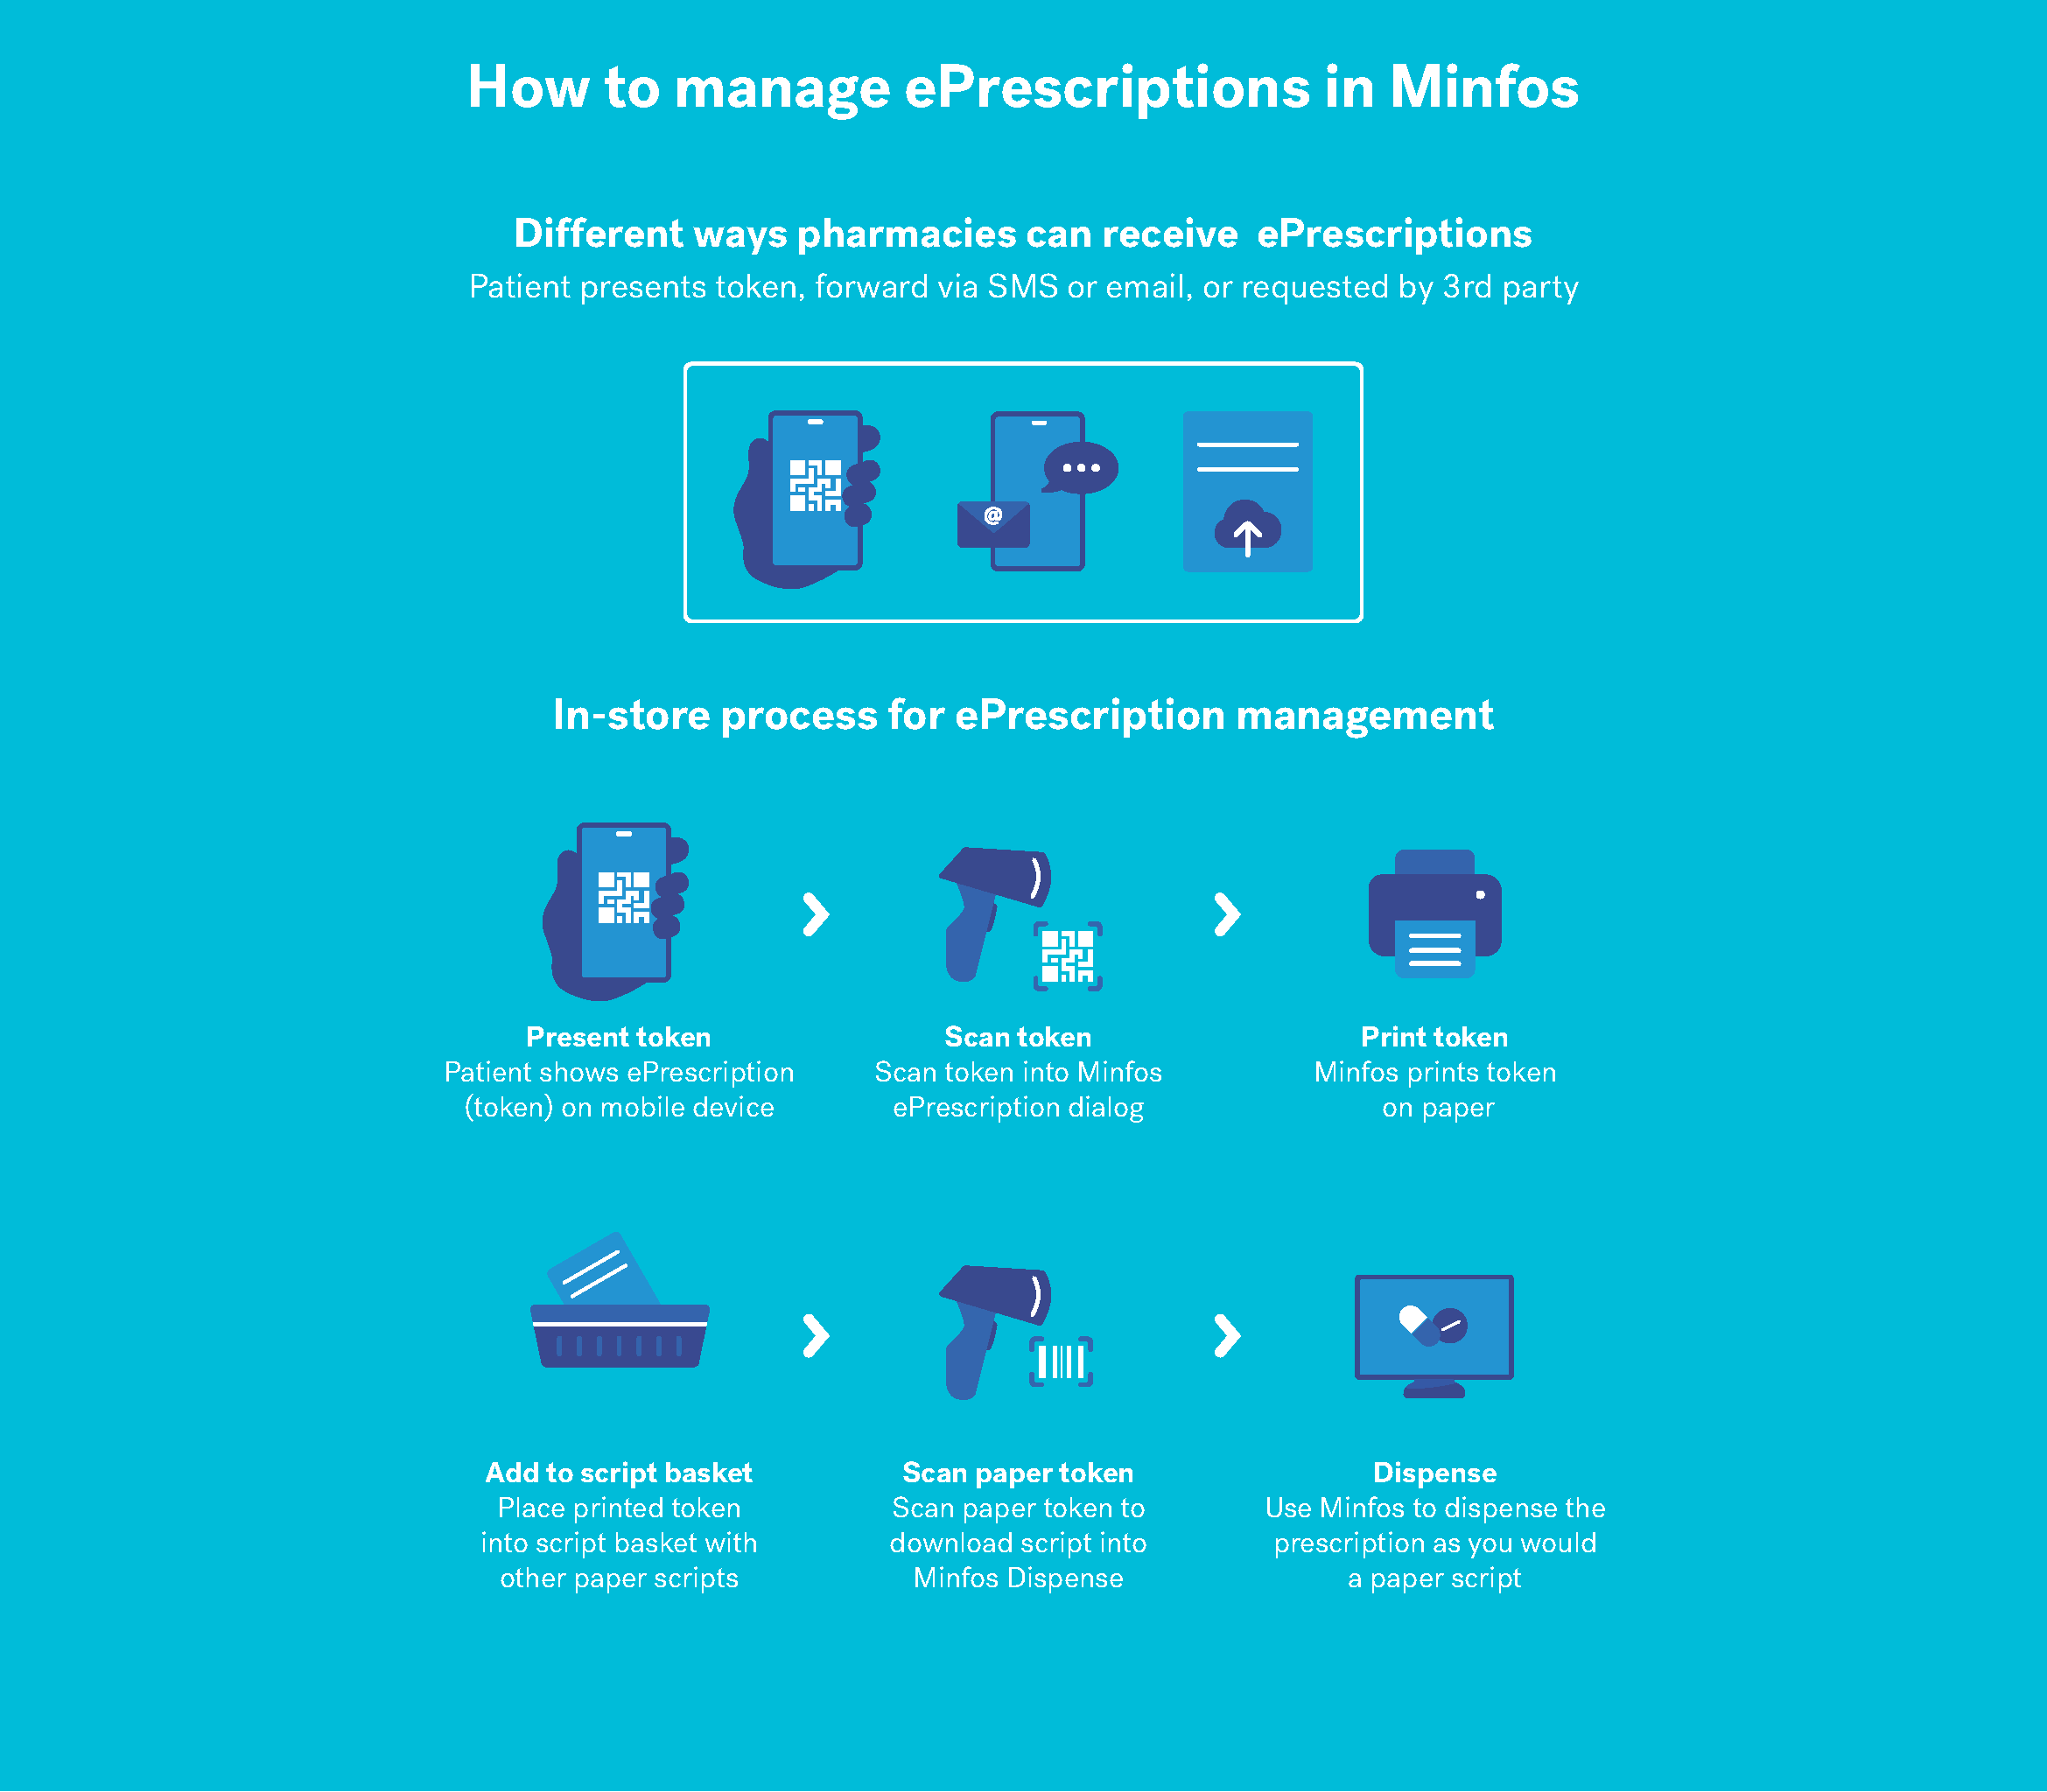 How to manage ePrescriptions in Minfos infographic